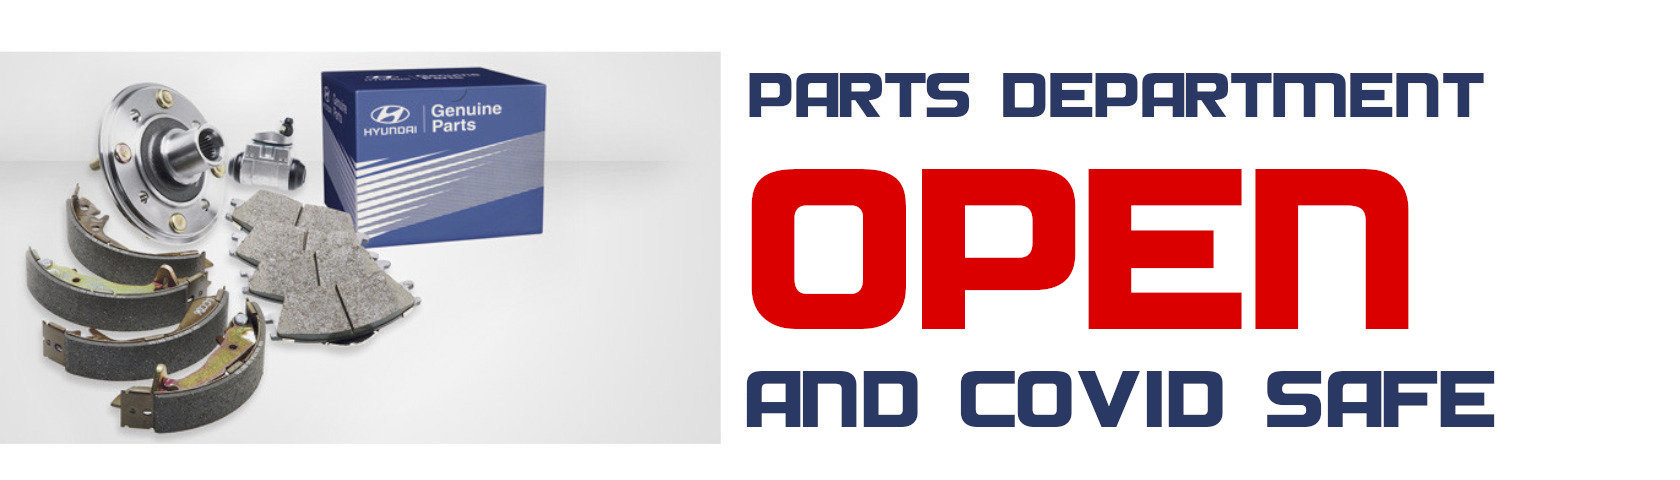 PARTS DEPARTMENT IS OPEN